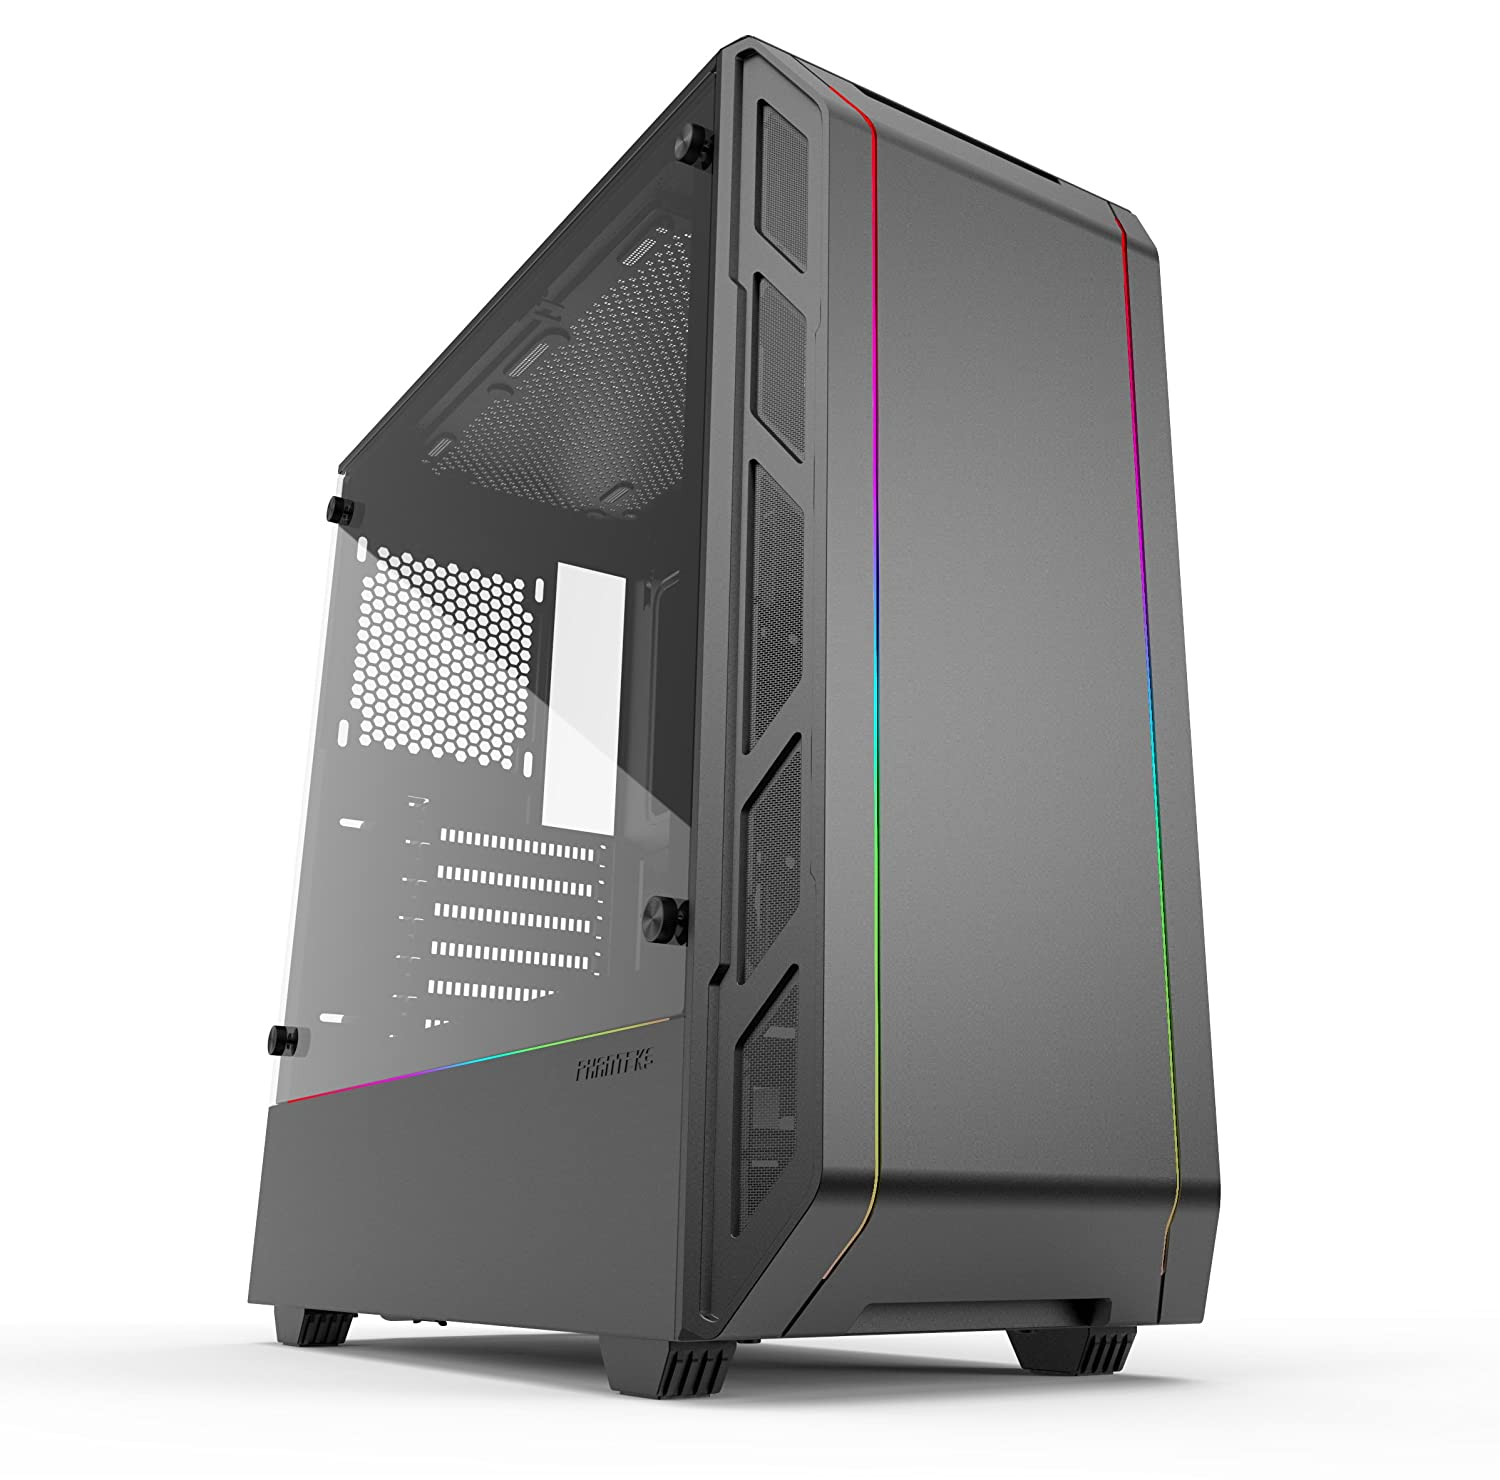 Phanteks Ph Ec350 Ptg Dbk Eclipse P350 X Compact Eatx Mid Tower Tempered Glass Digital Rgb Black Cases by Phanteks